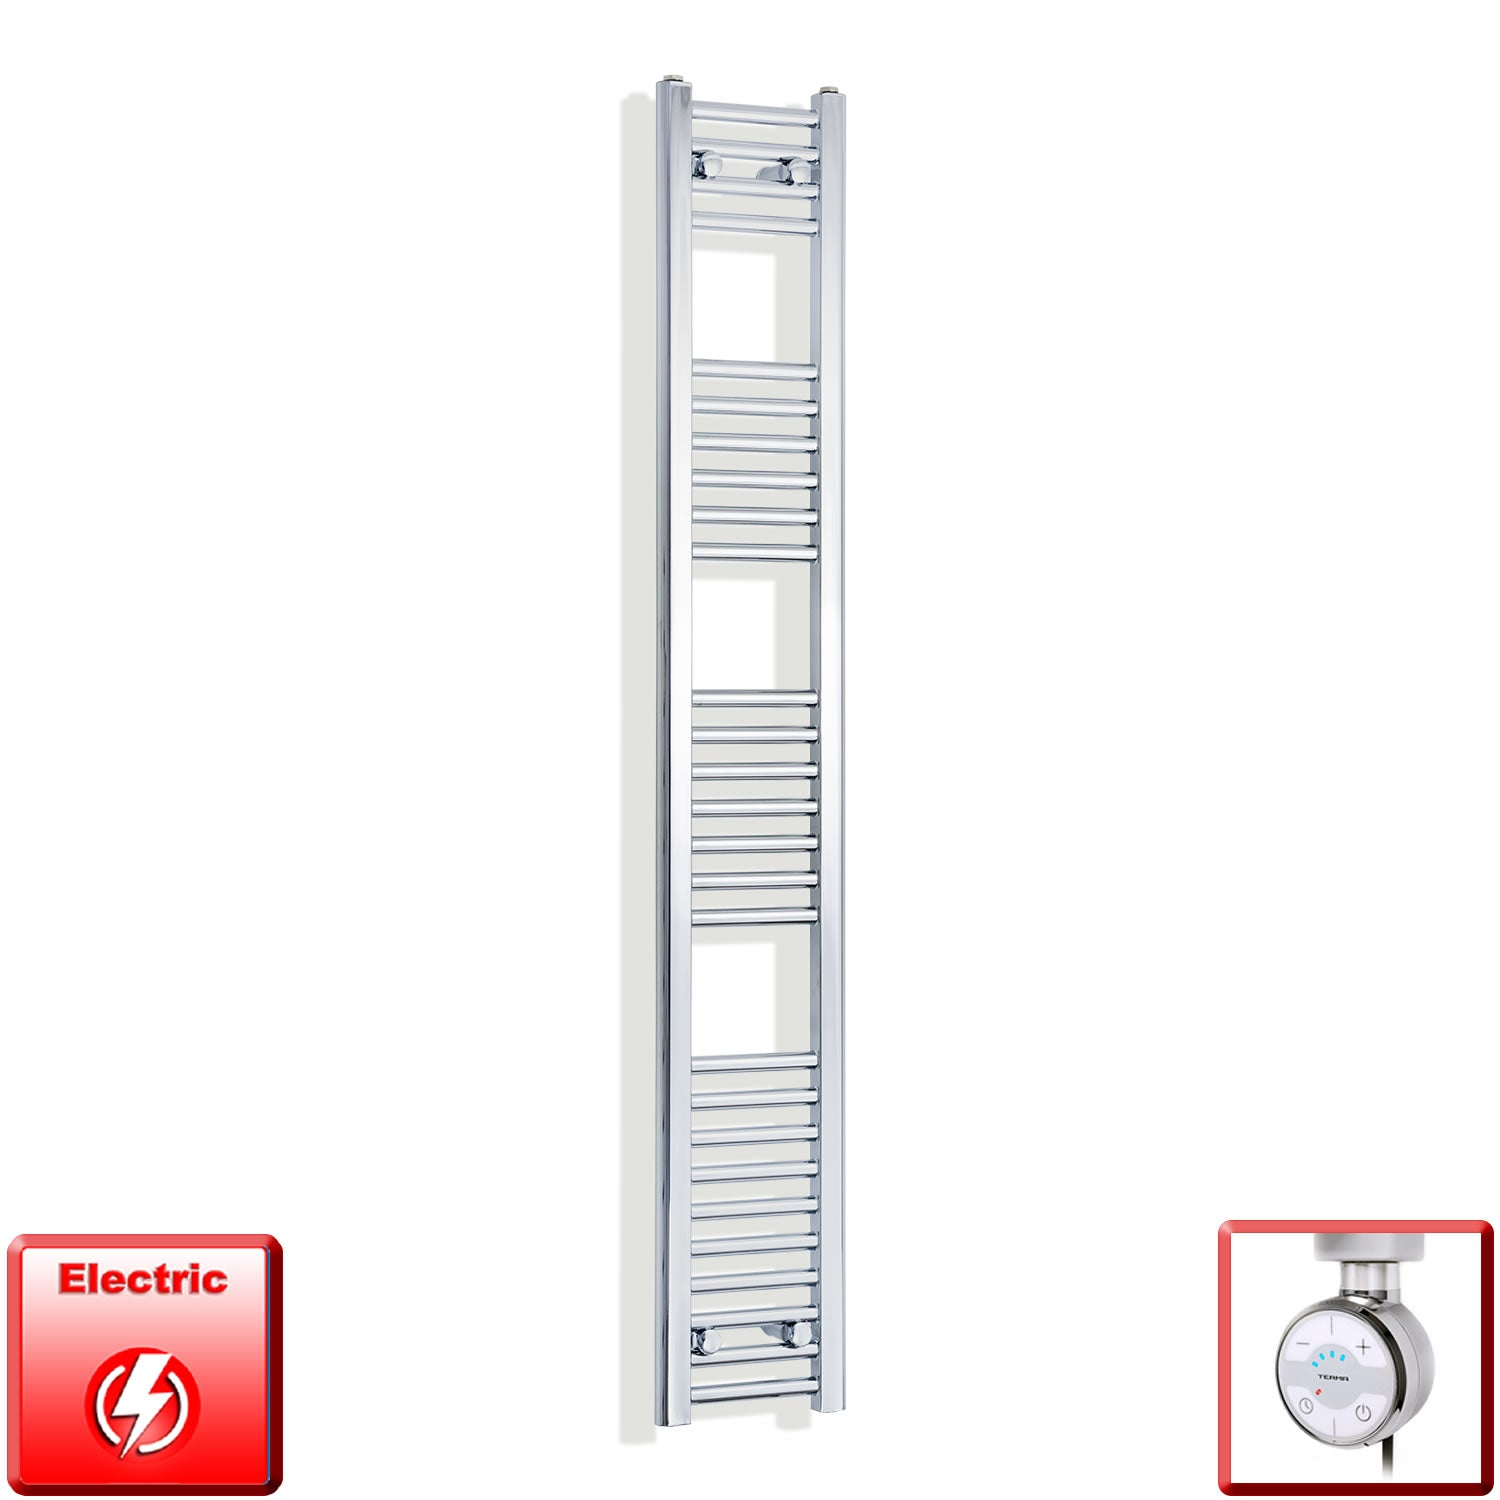 250mm Wide 1600mm High Pre-Filled Chrome Electric Towel Rail Radiator With Thermostatic MOA Element